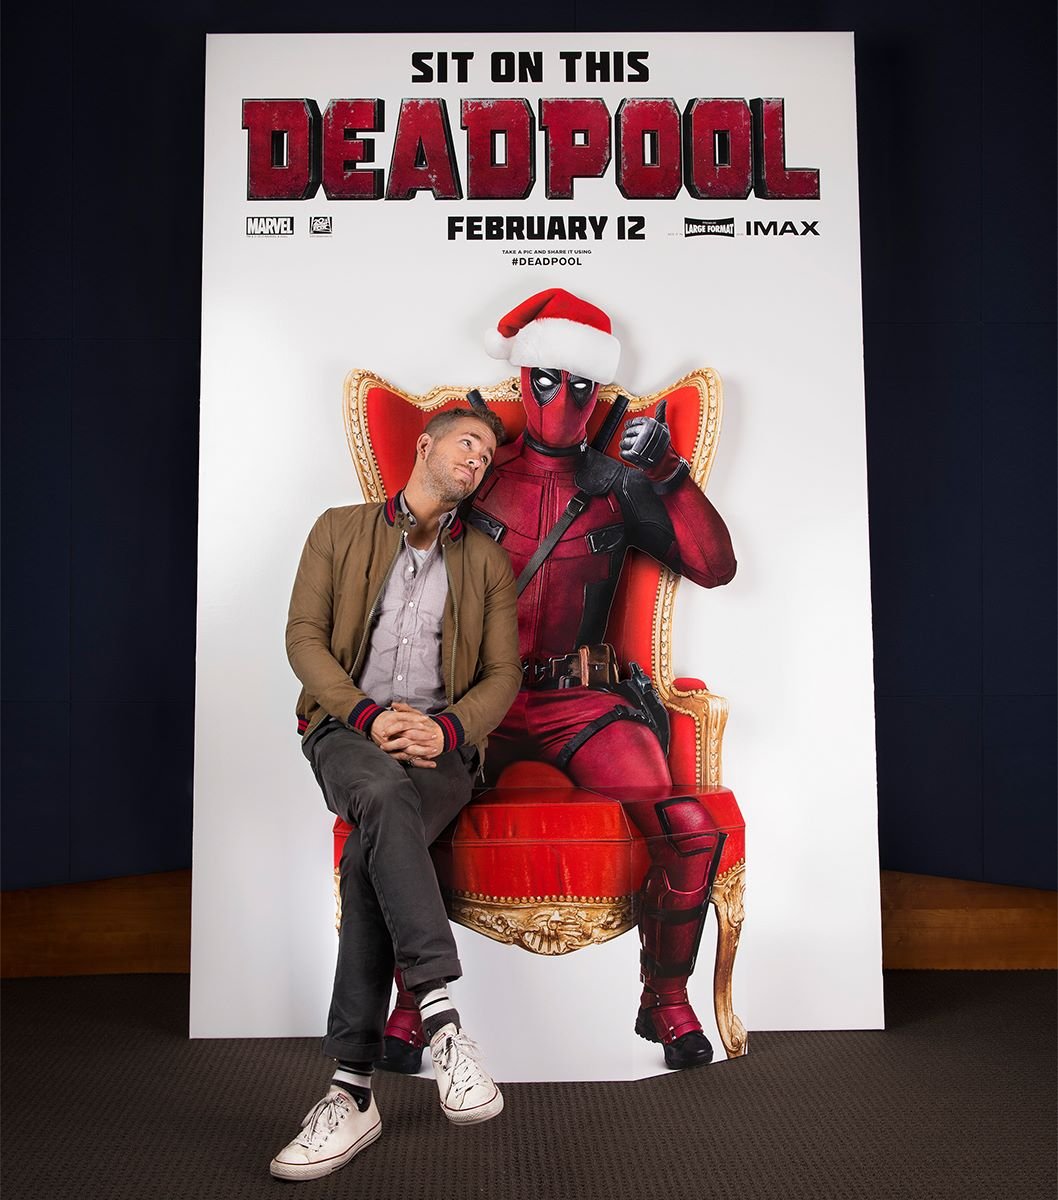 12 Days of Deadpool